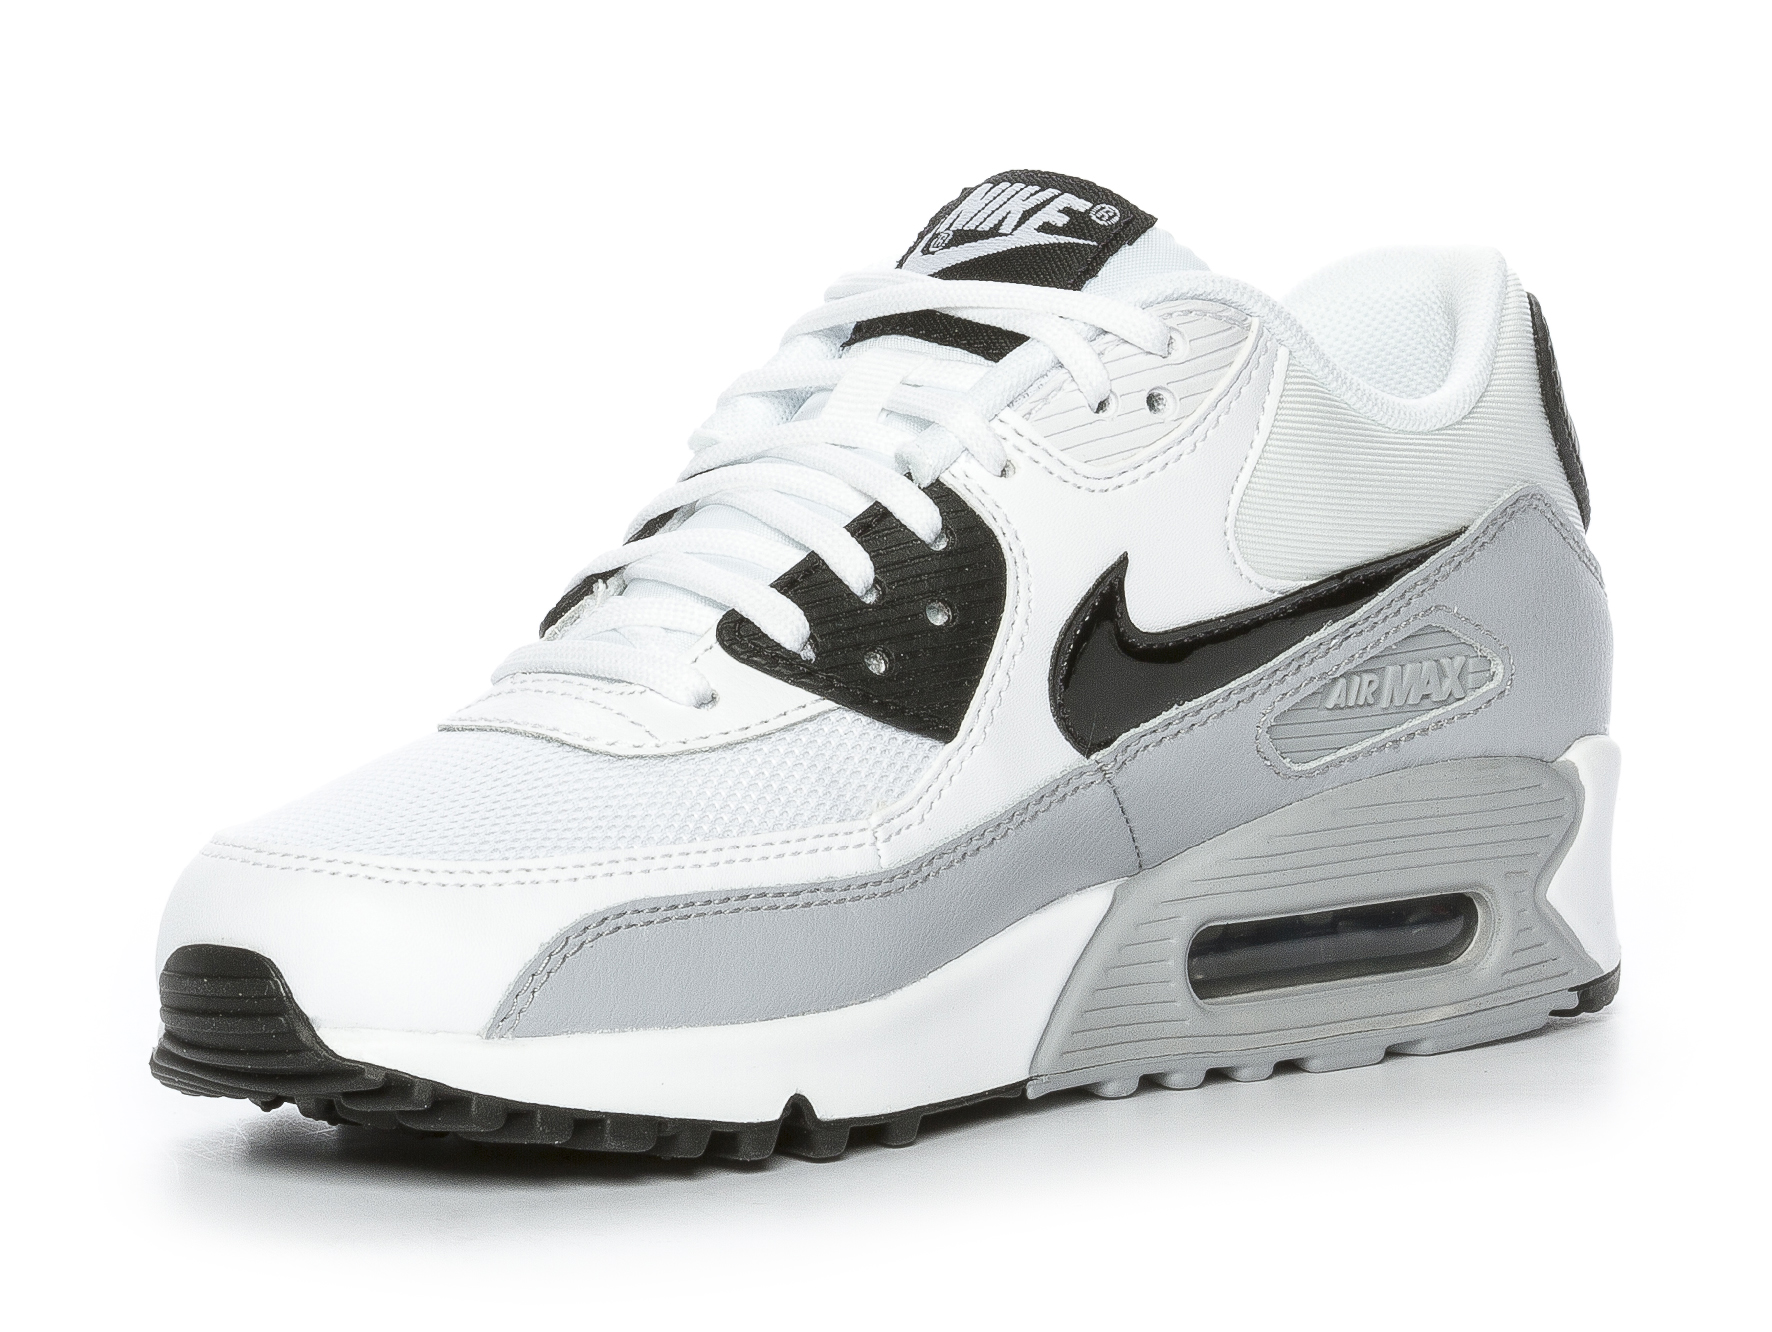 low priced 60238 09f12 Nike Air Max 90 Essential - Valkoinen 300016 feetfirst.fi